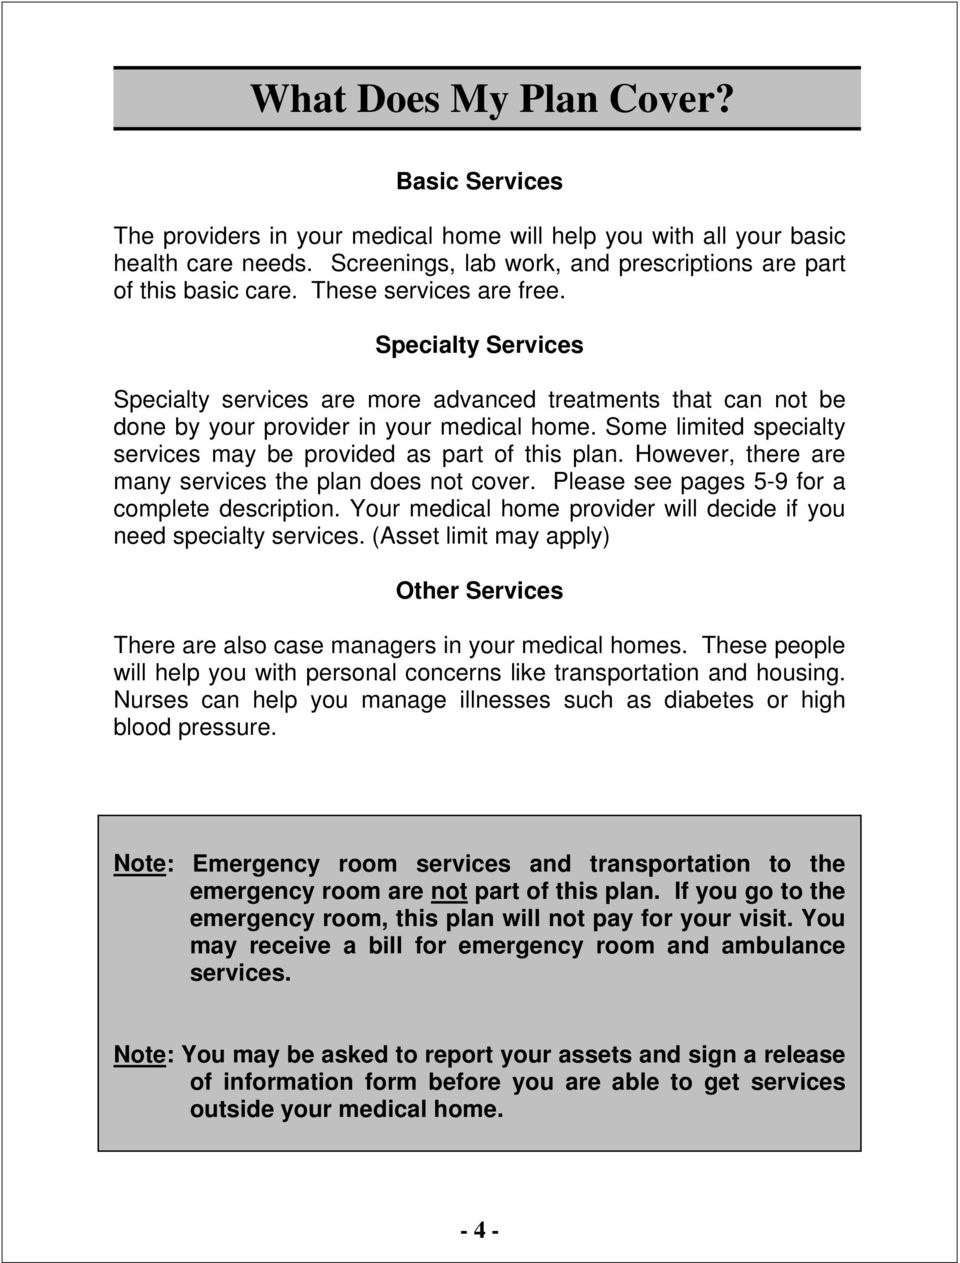 Some limited specialty services may be provided as part of this plan. However, there are many services the plan does not cover. Please see pages 5-9 for a complete description.